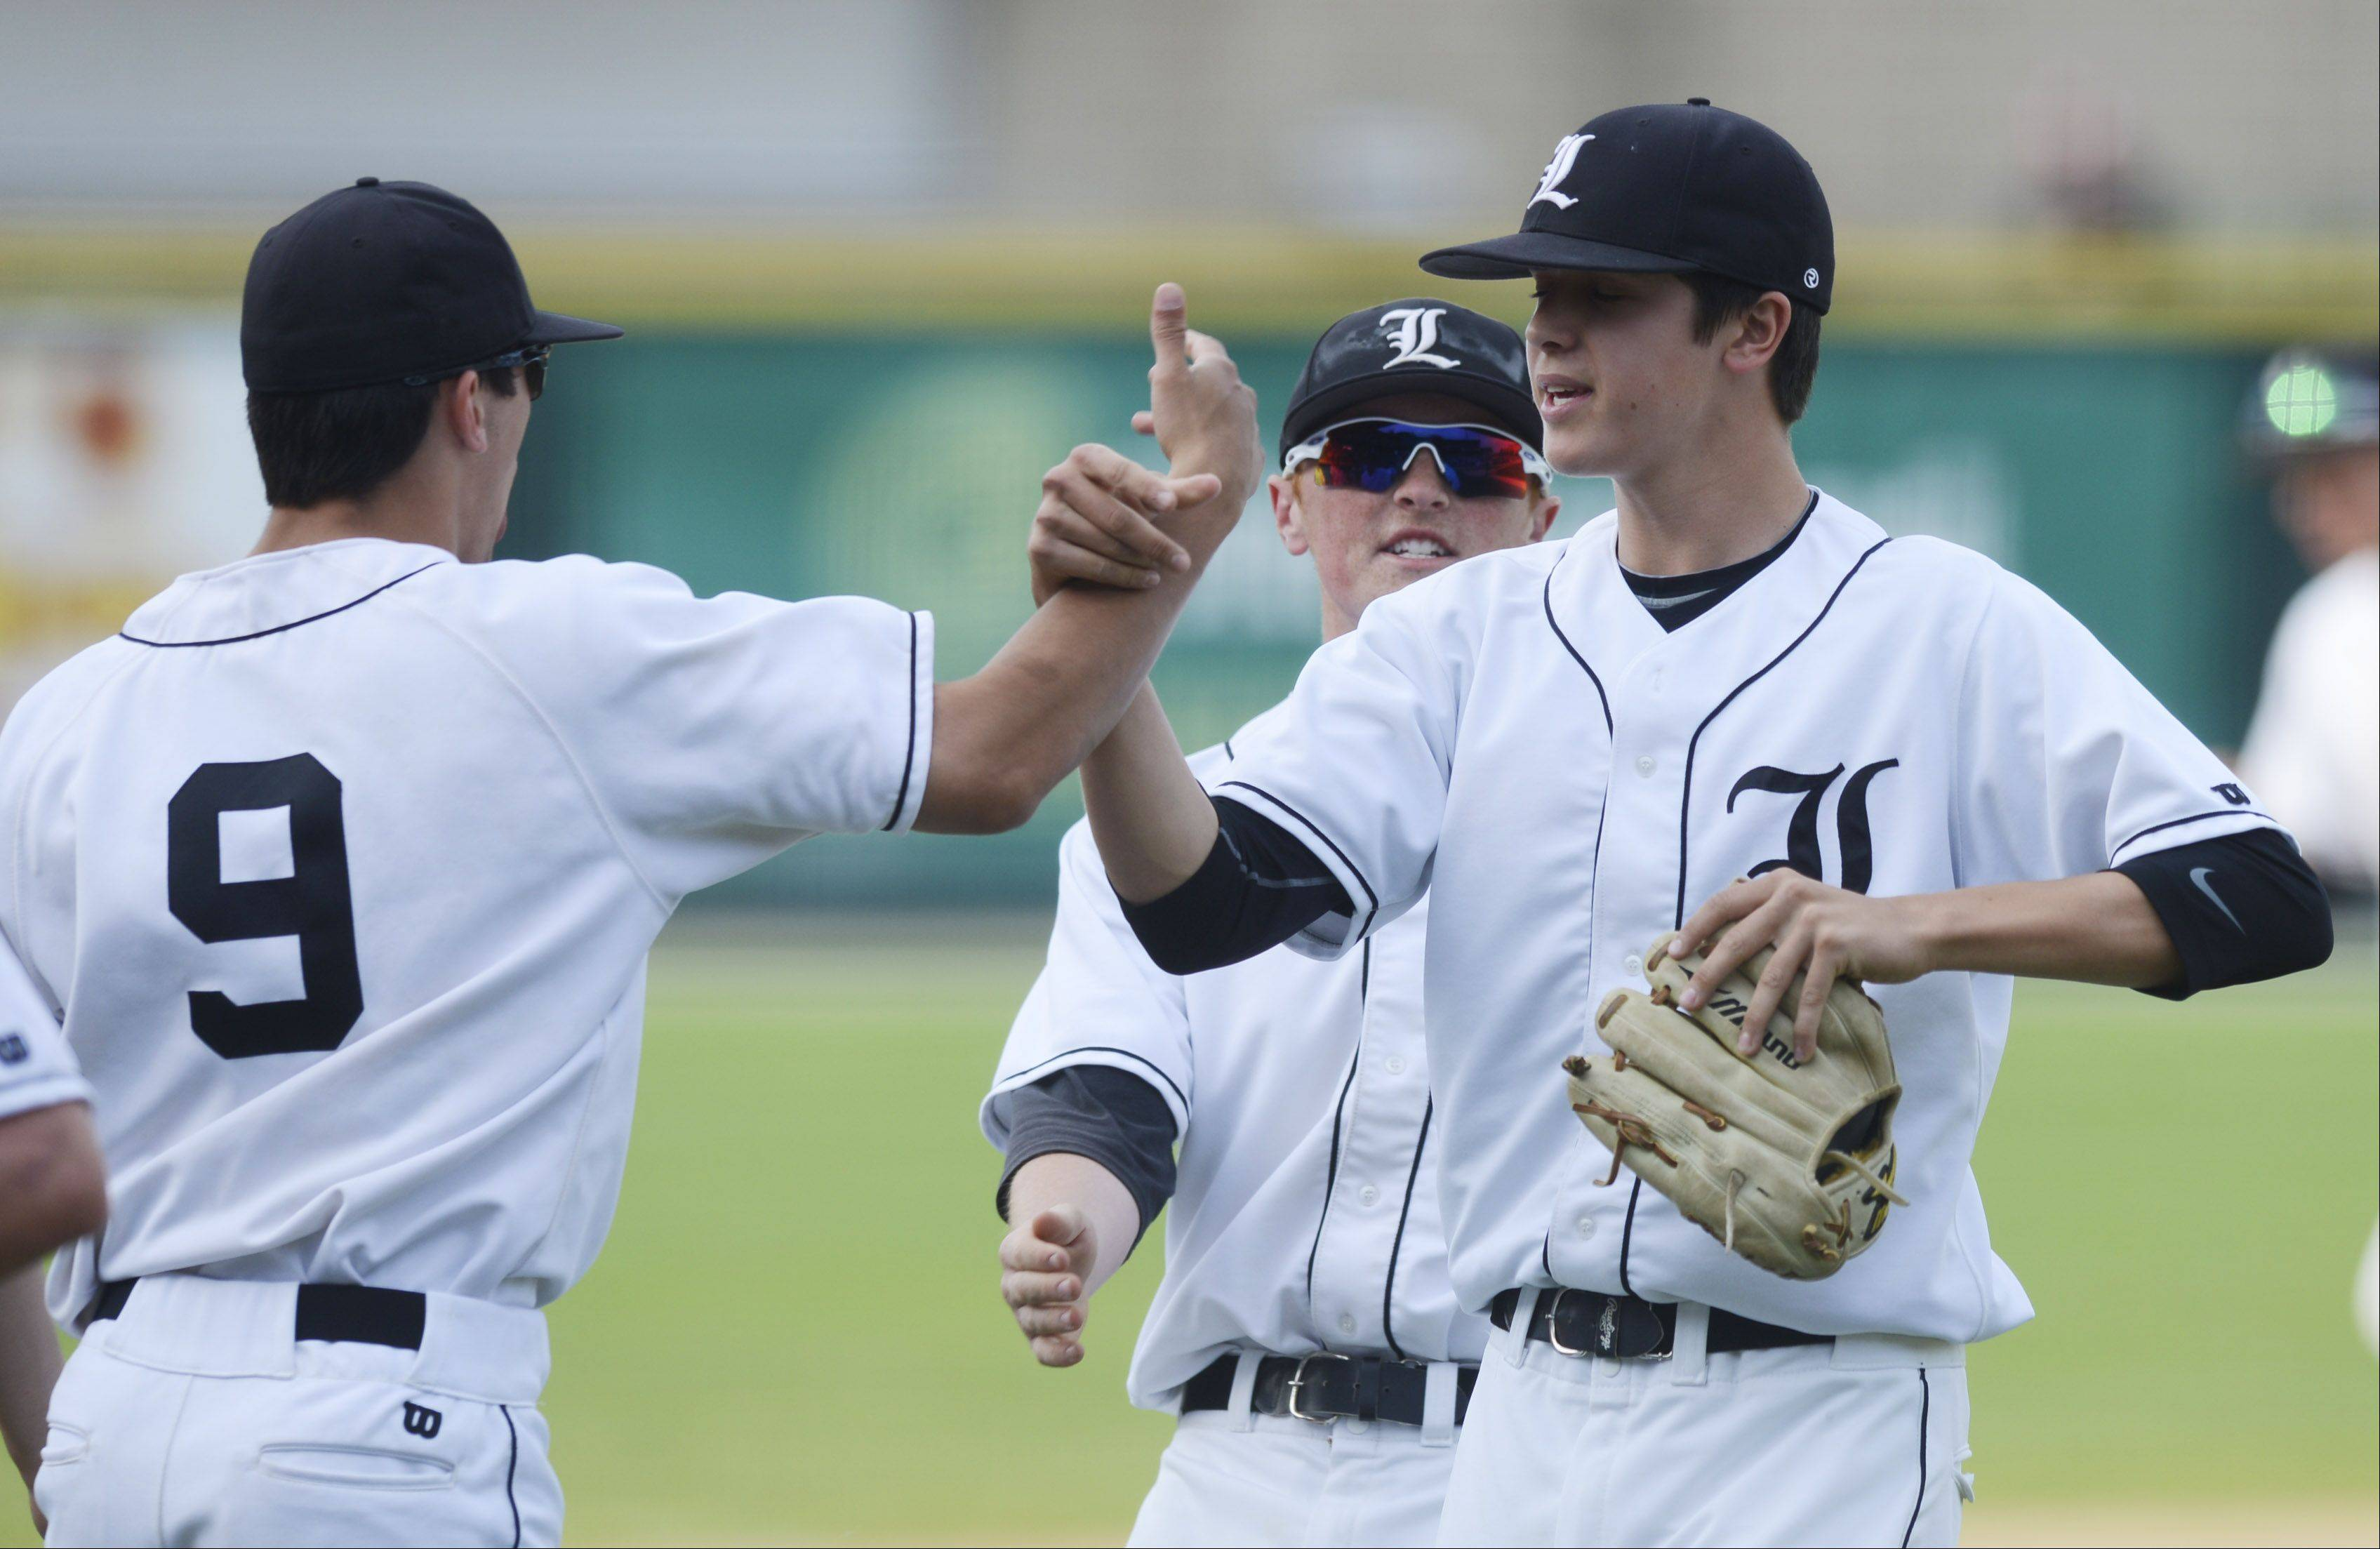 Libertyville pitcher Nate Cote gets a high five from teammate Dereck Loos after the first inning of the Class 4A state baseball championship game against Mt. Carmel at Silver Cross Field in Joliet Saturday.